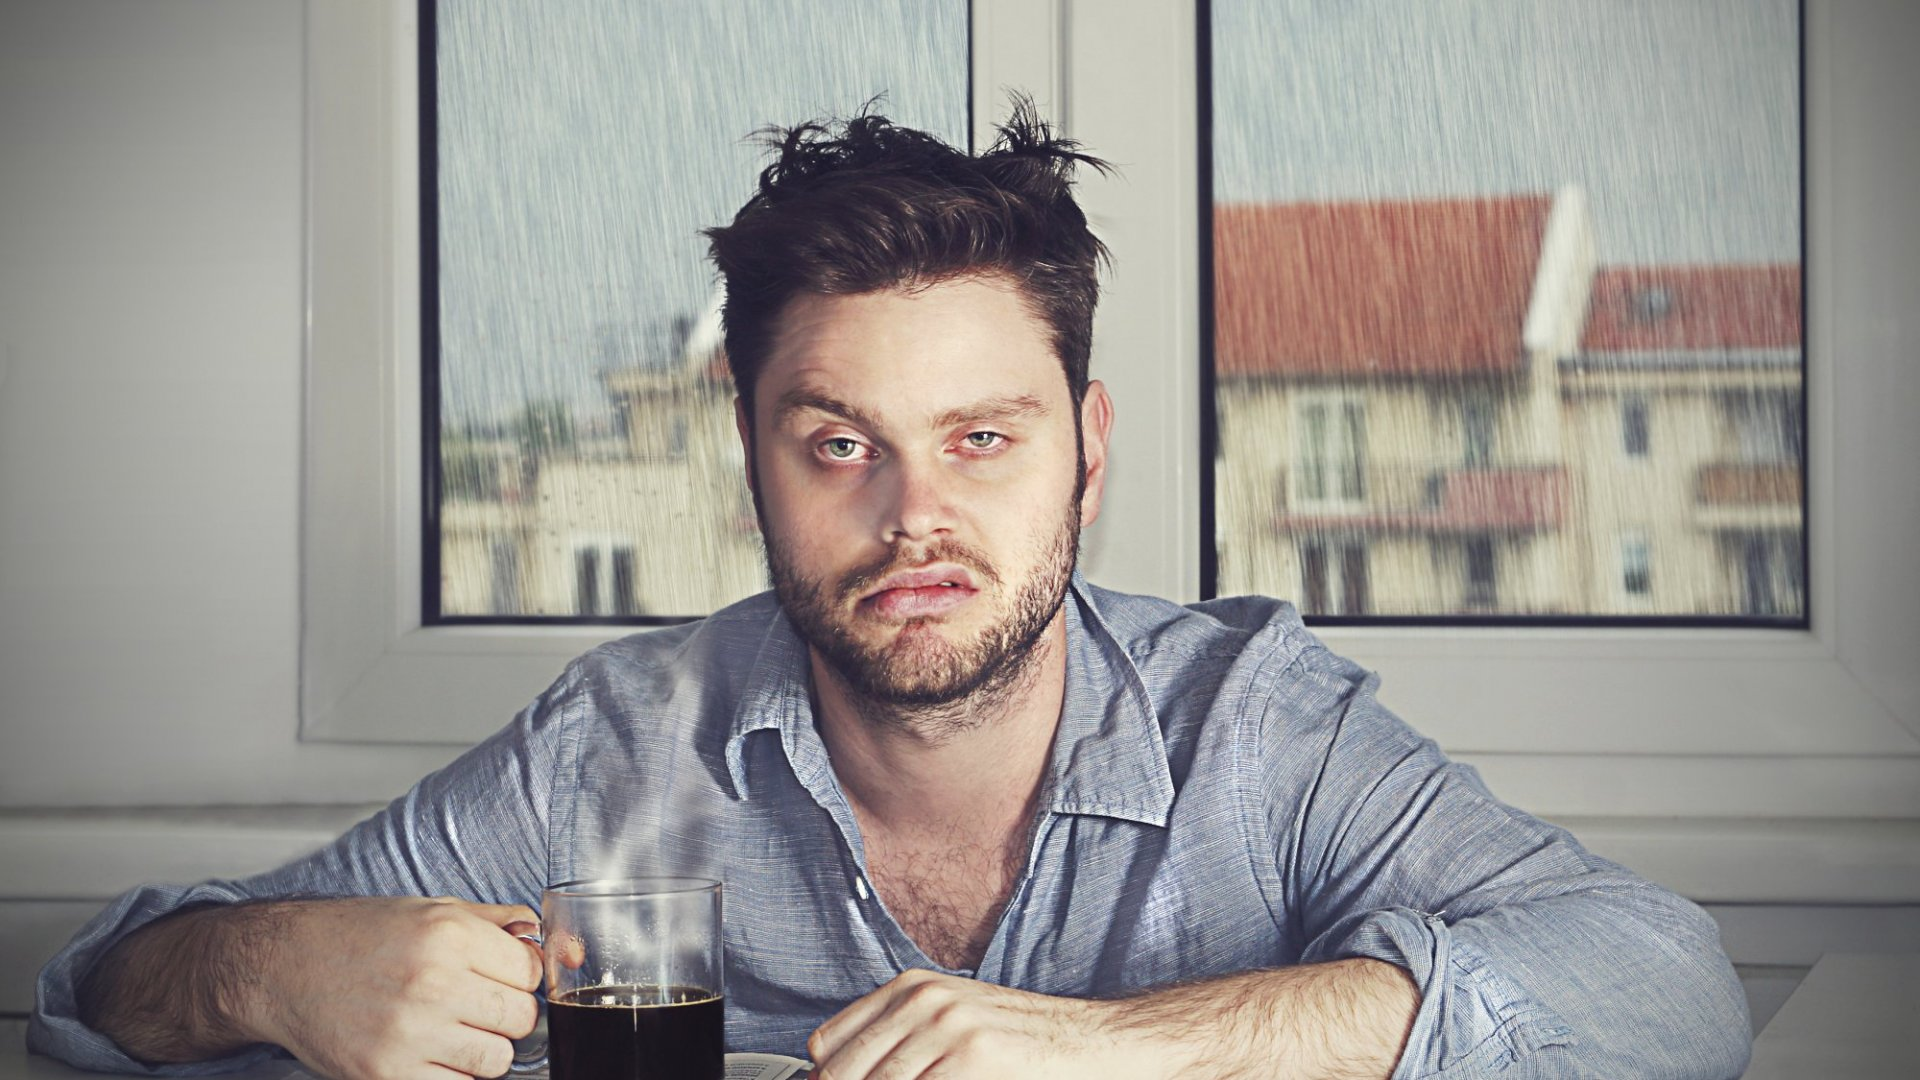 These Entrepreneurs Want to Disrupt Your Hangover